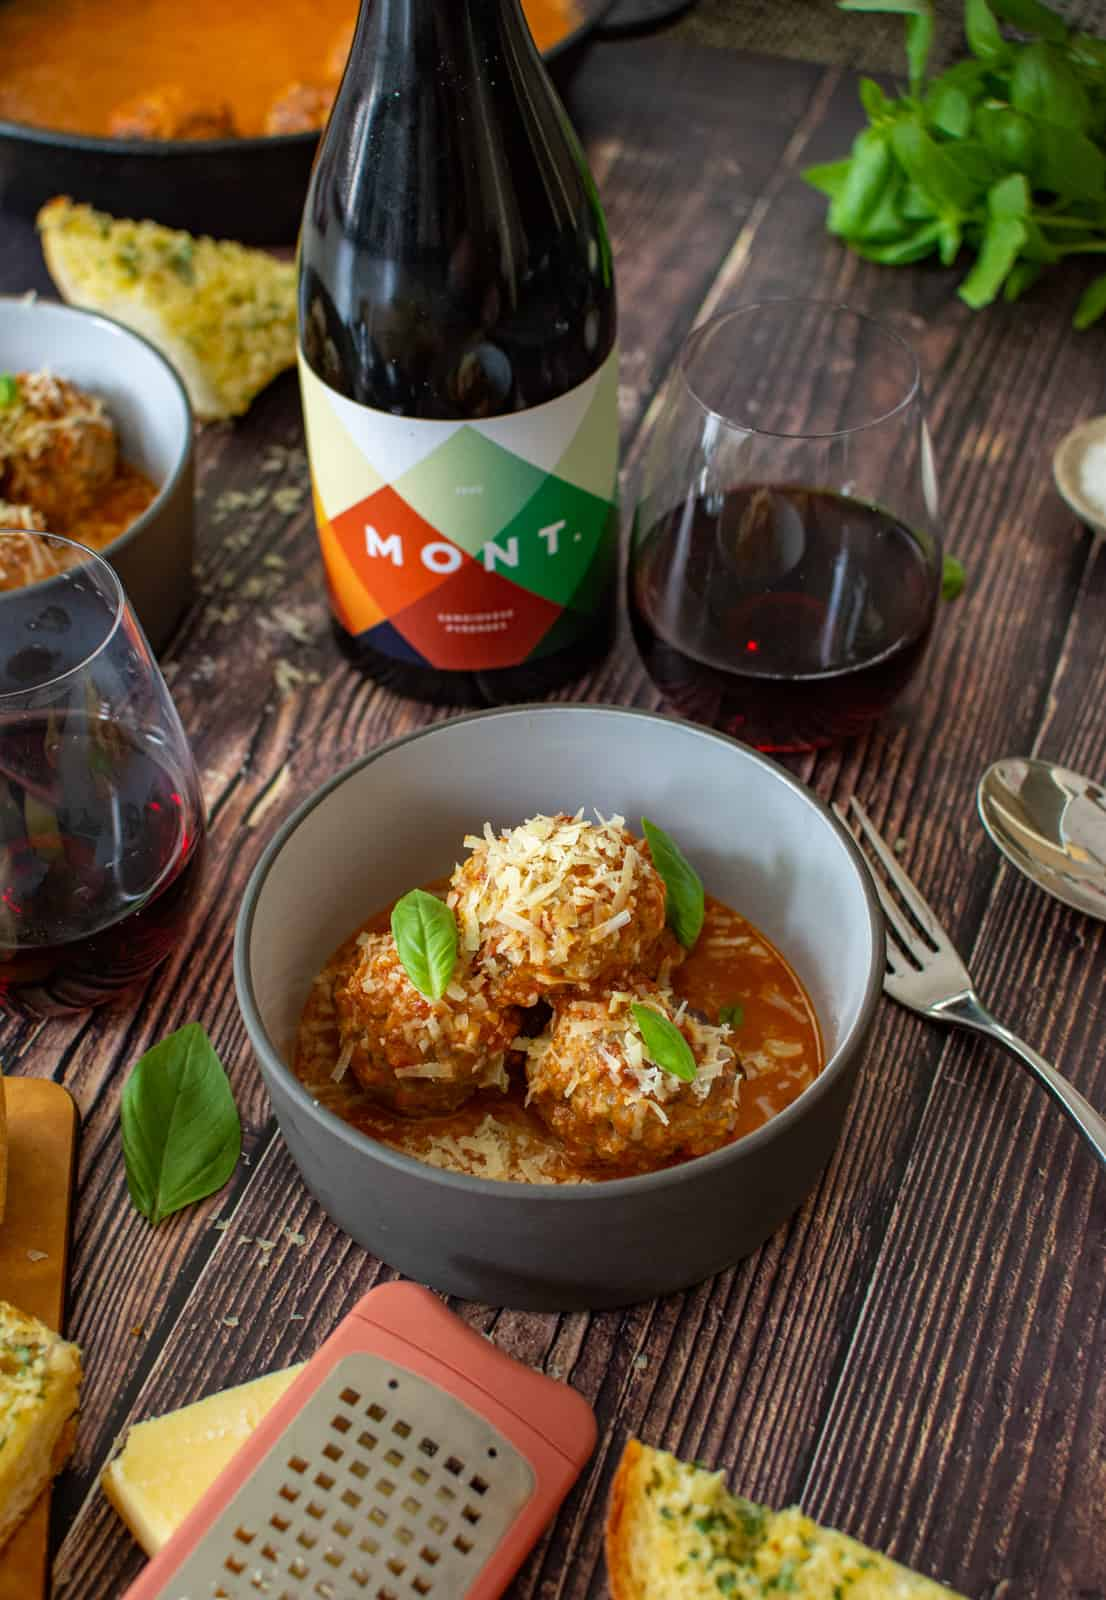 bowl of pork & beef meatballs, marinara sauce, parmsan and some wine in glasses on wooden table